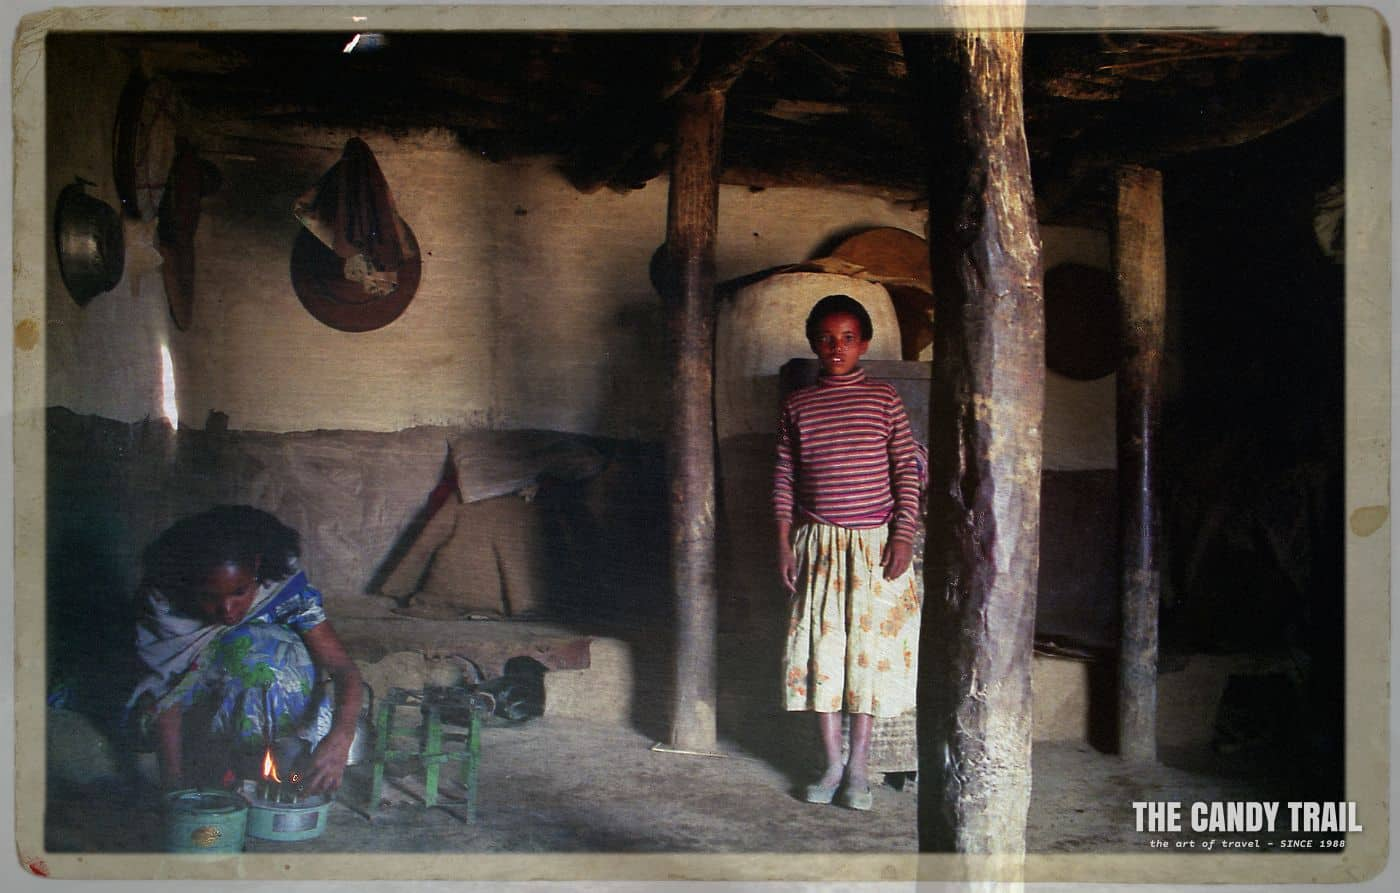 Inside the house and Mamayta prepares a fire for tea